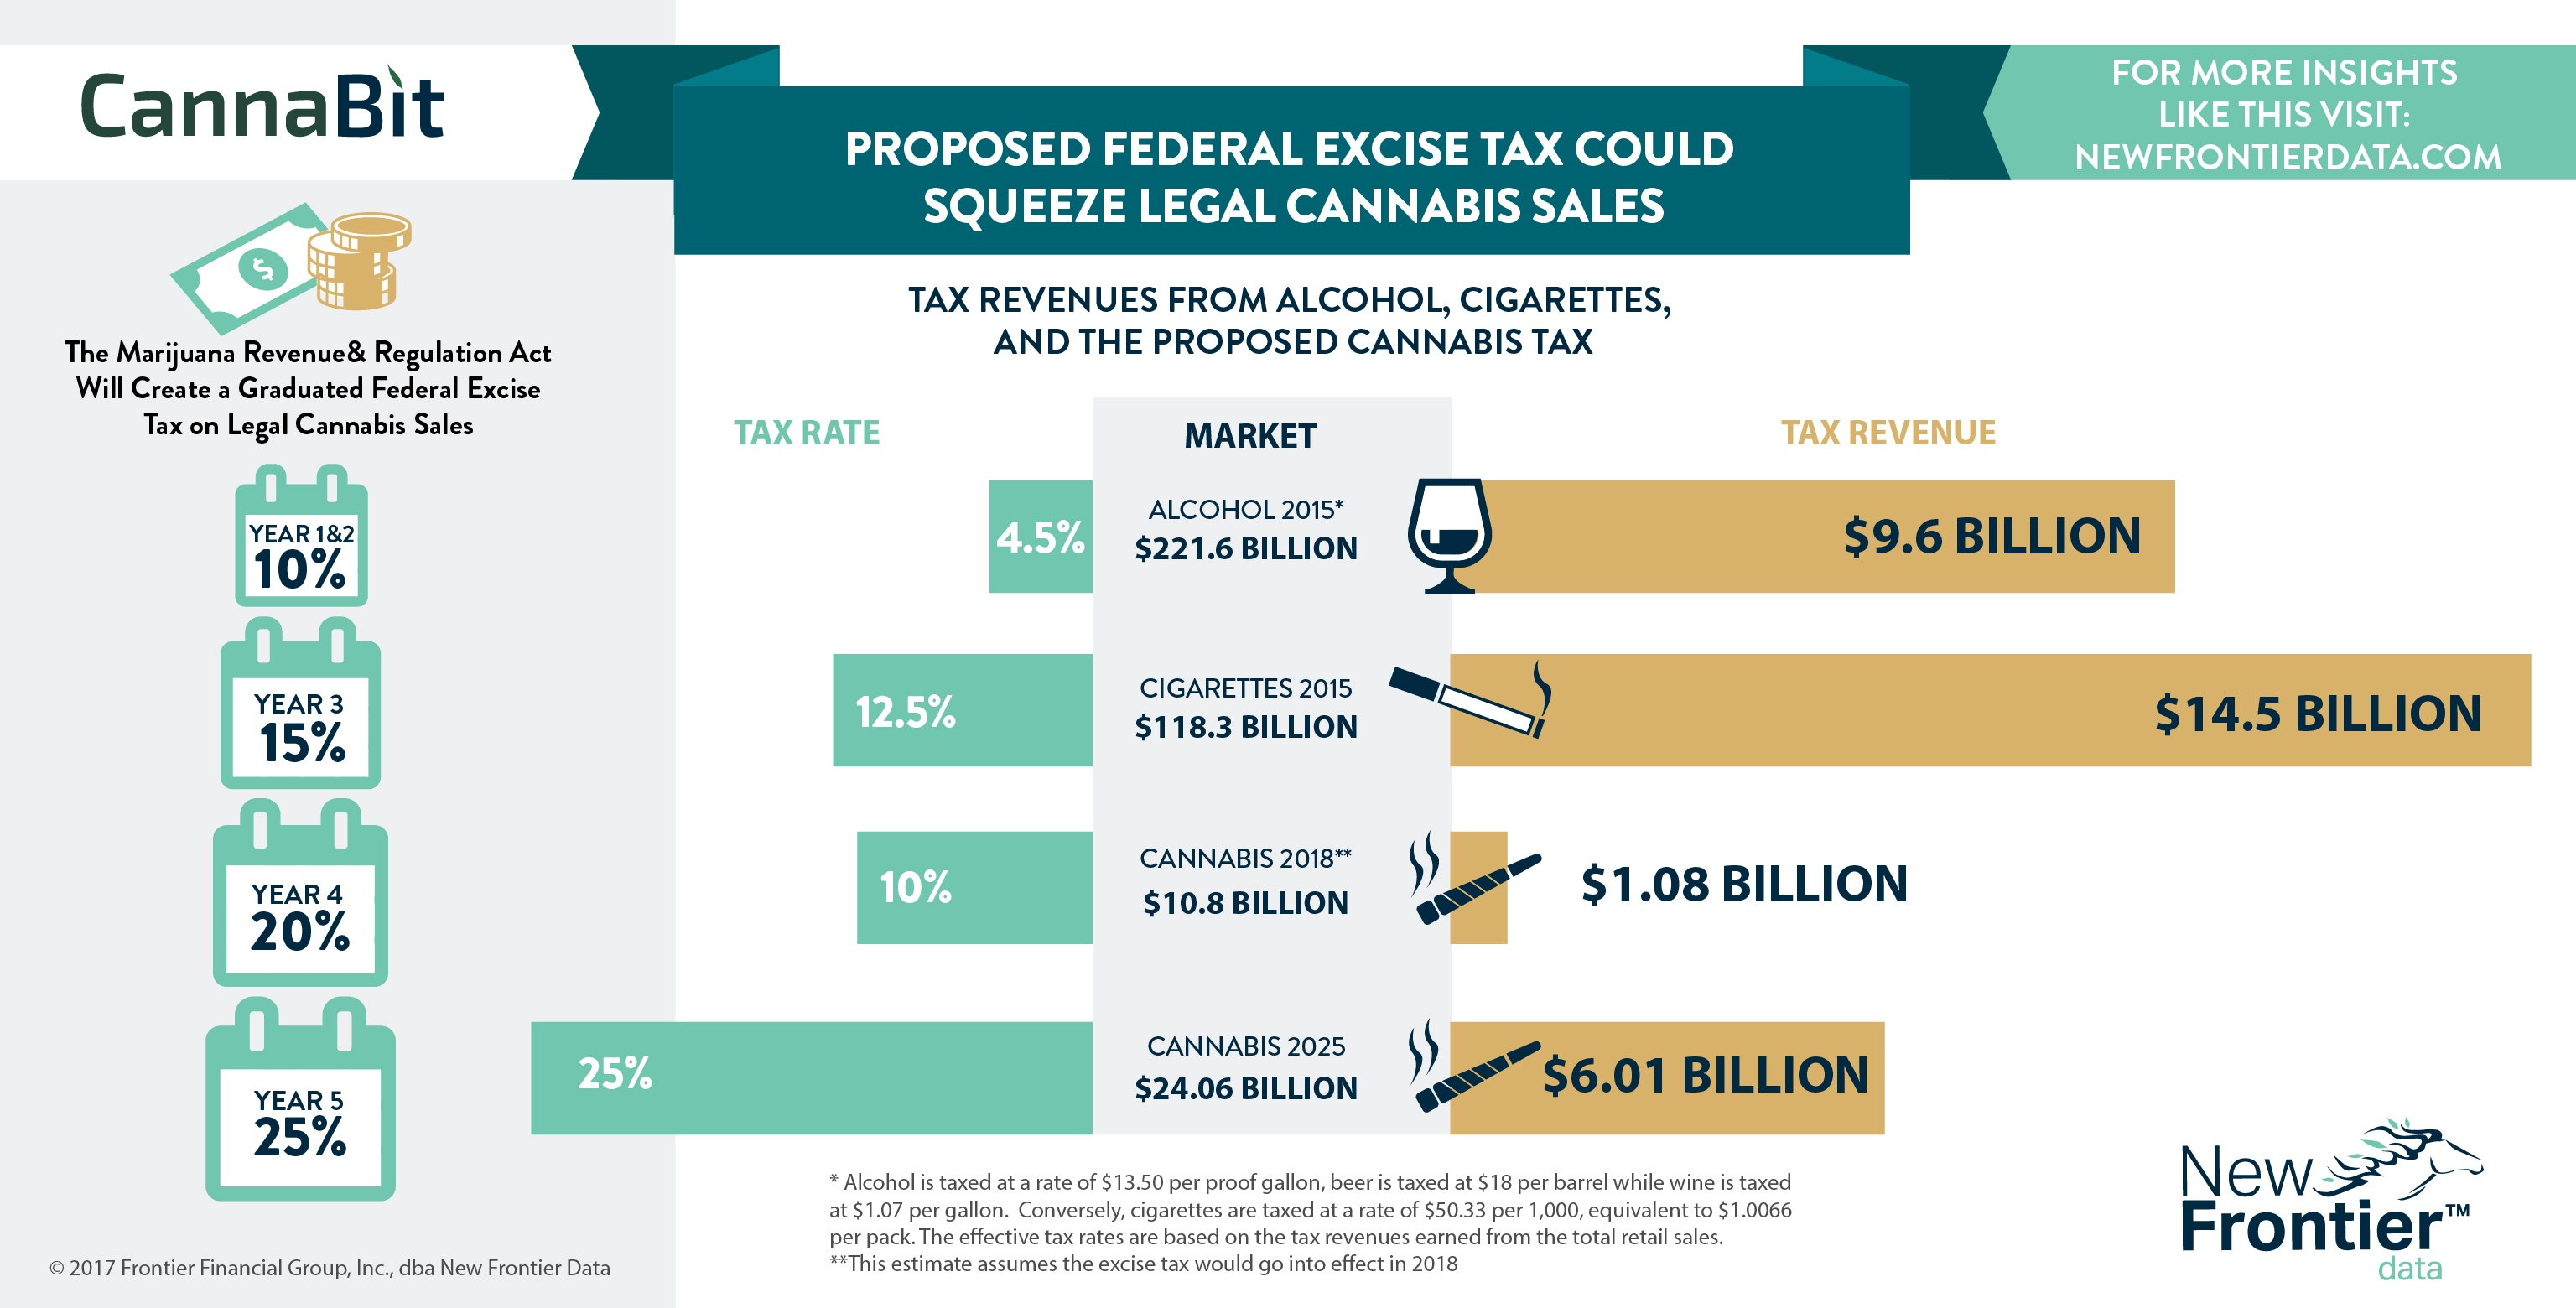 Cannabit: Proposed Federal Excise Tax Could Squeeze Legal Cannabis Sales/ 05282017